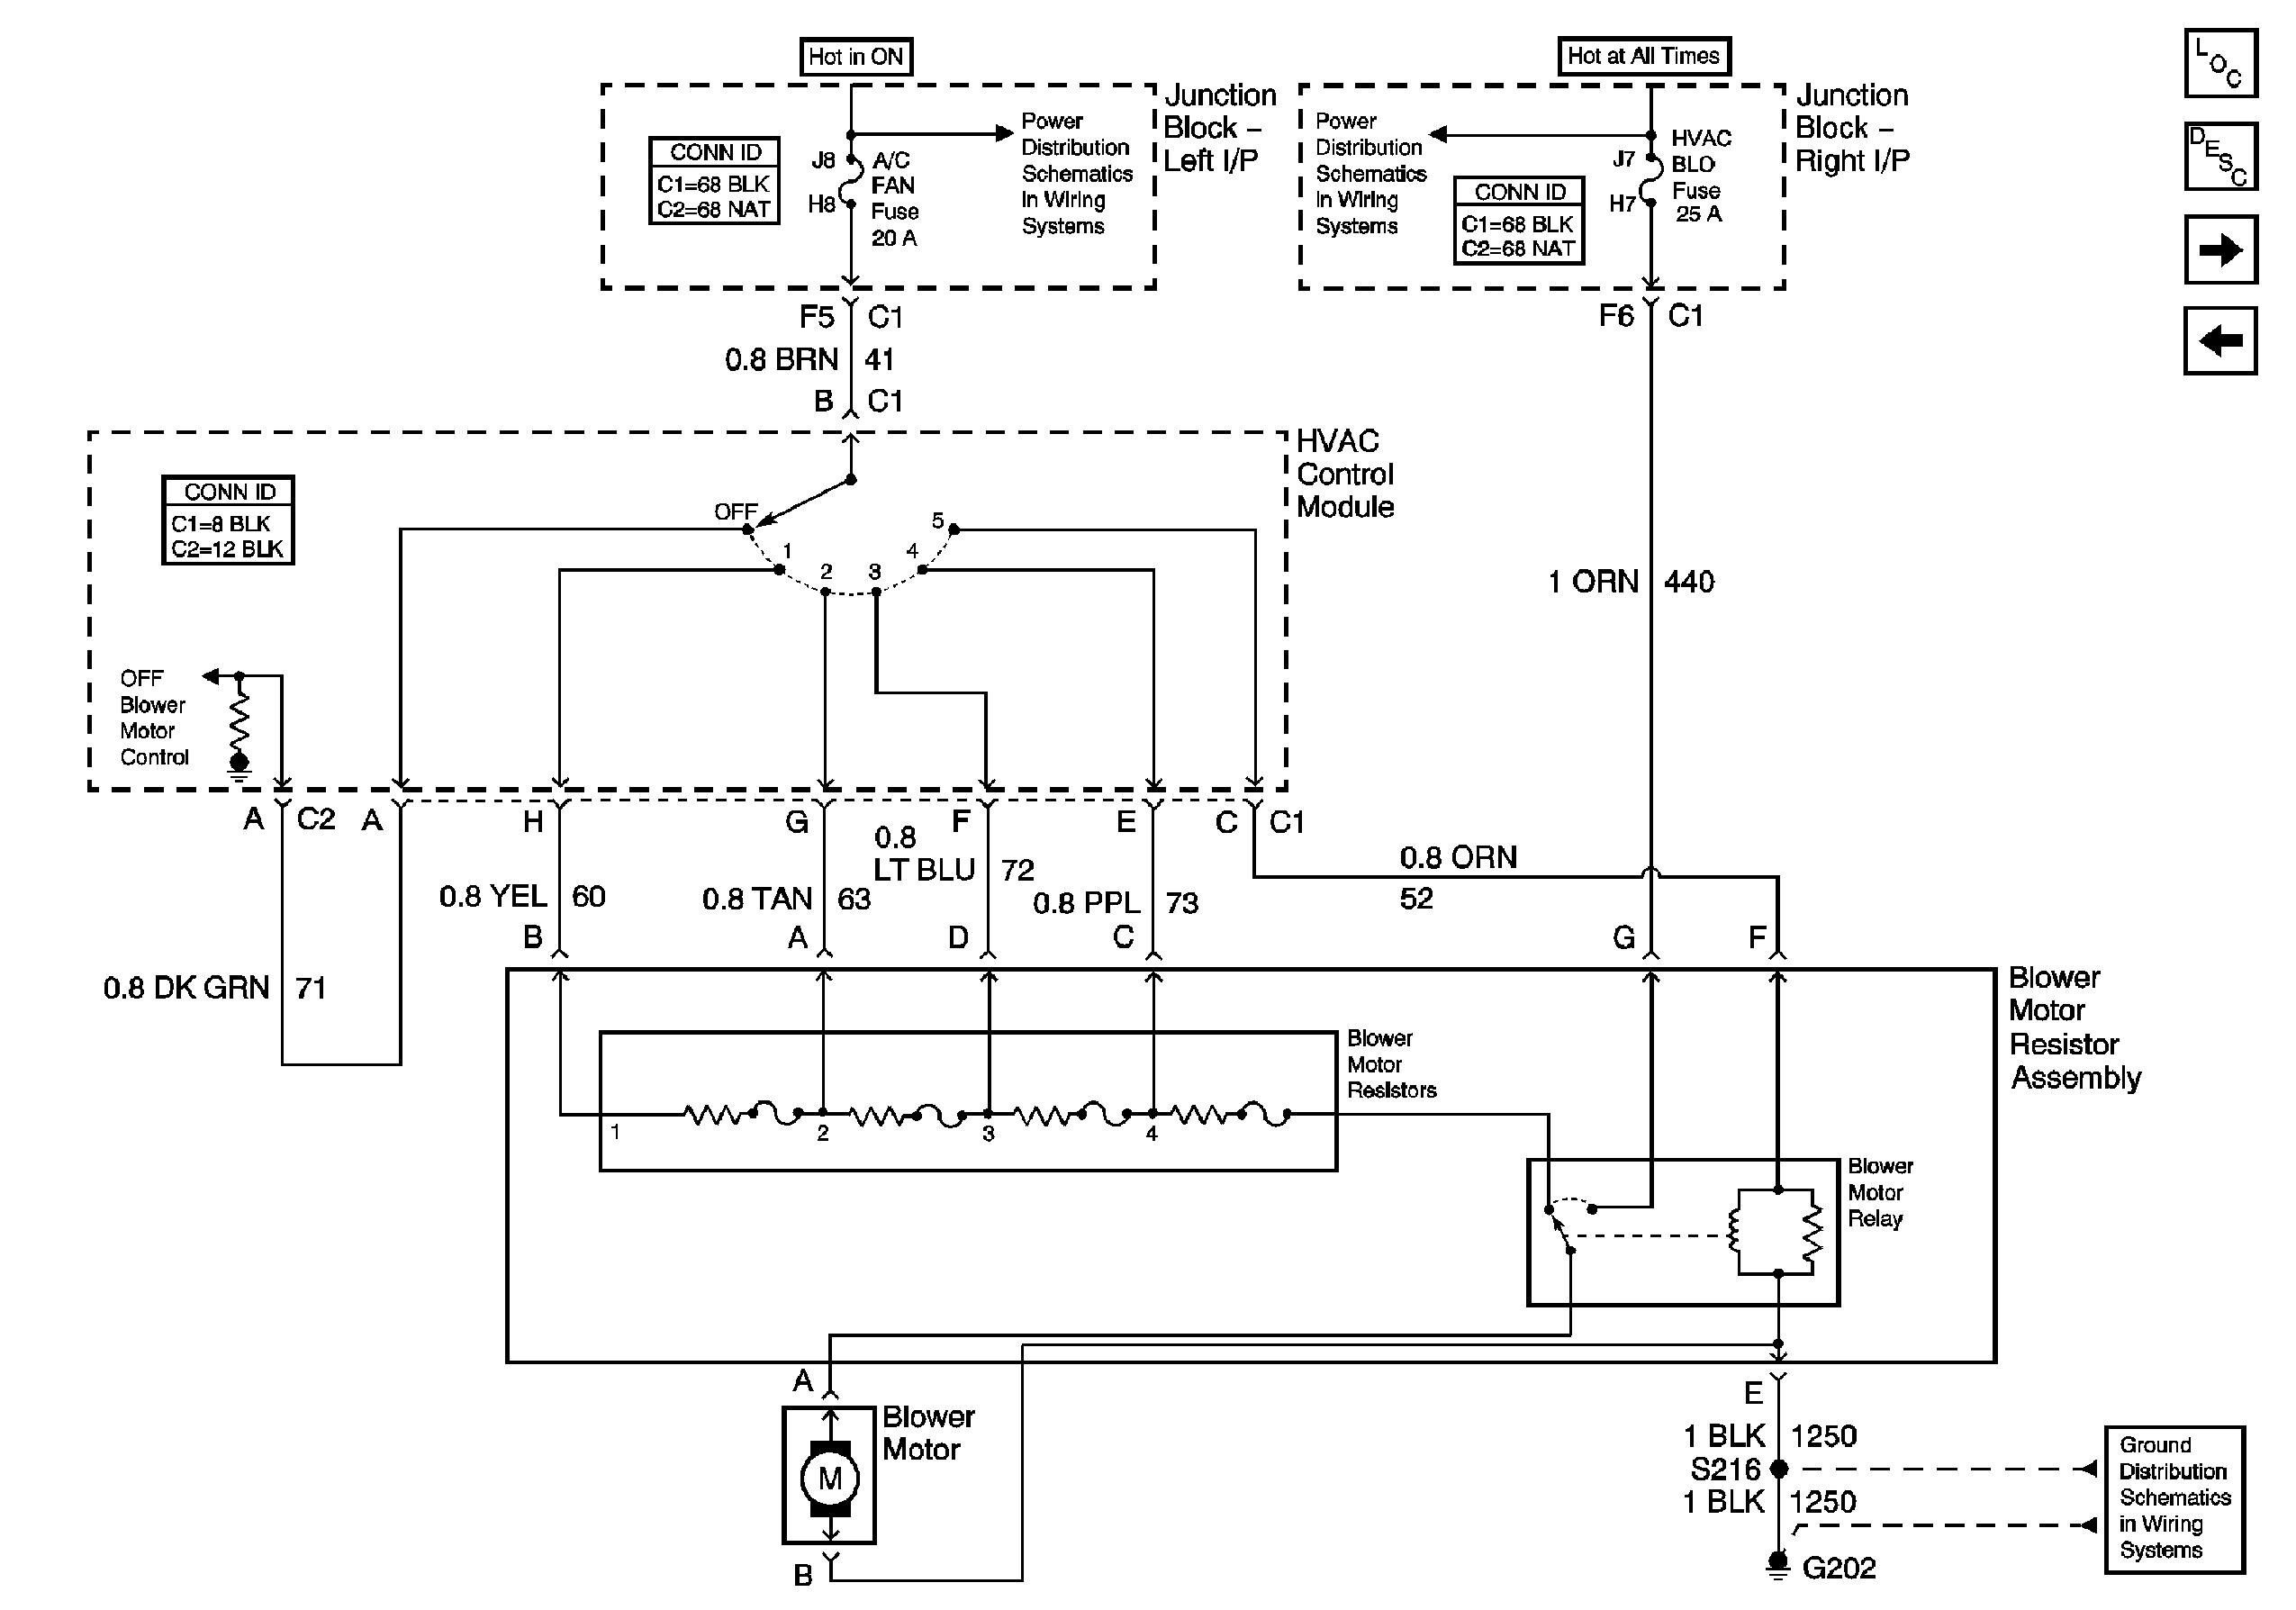 new 2004 dodge ram 1500 ignition wiring diagram diagram diagramsample diagramtemplate wiringdiagram [ 2550 x 1788 Pixel ]